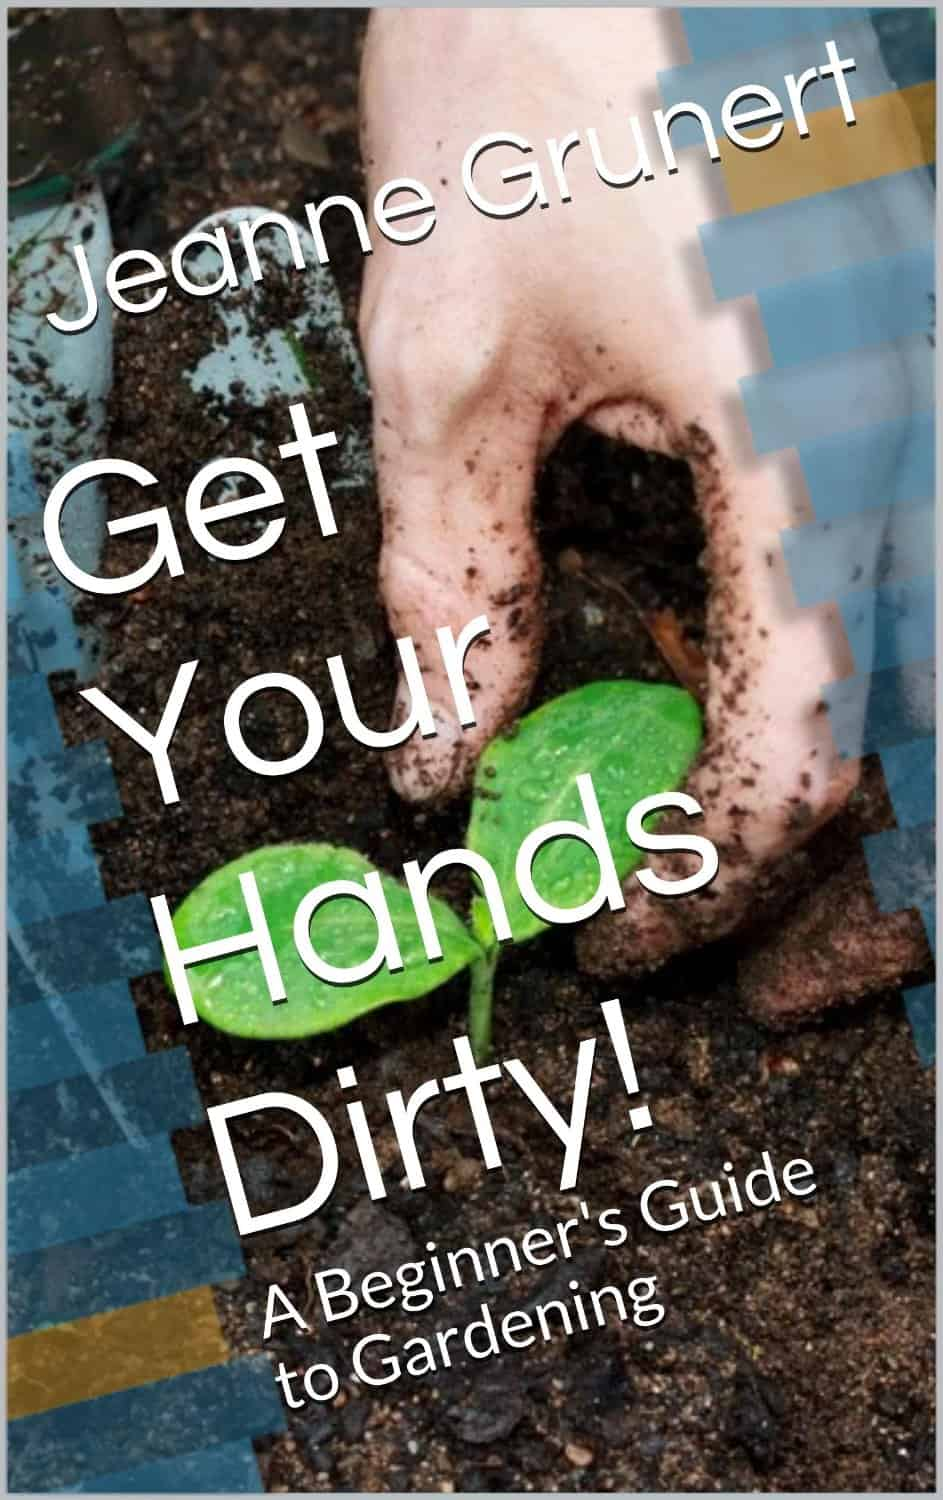 Get Your Hands Dirty! A Beginner's Guide to Gardening